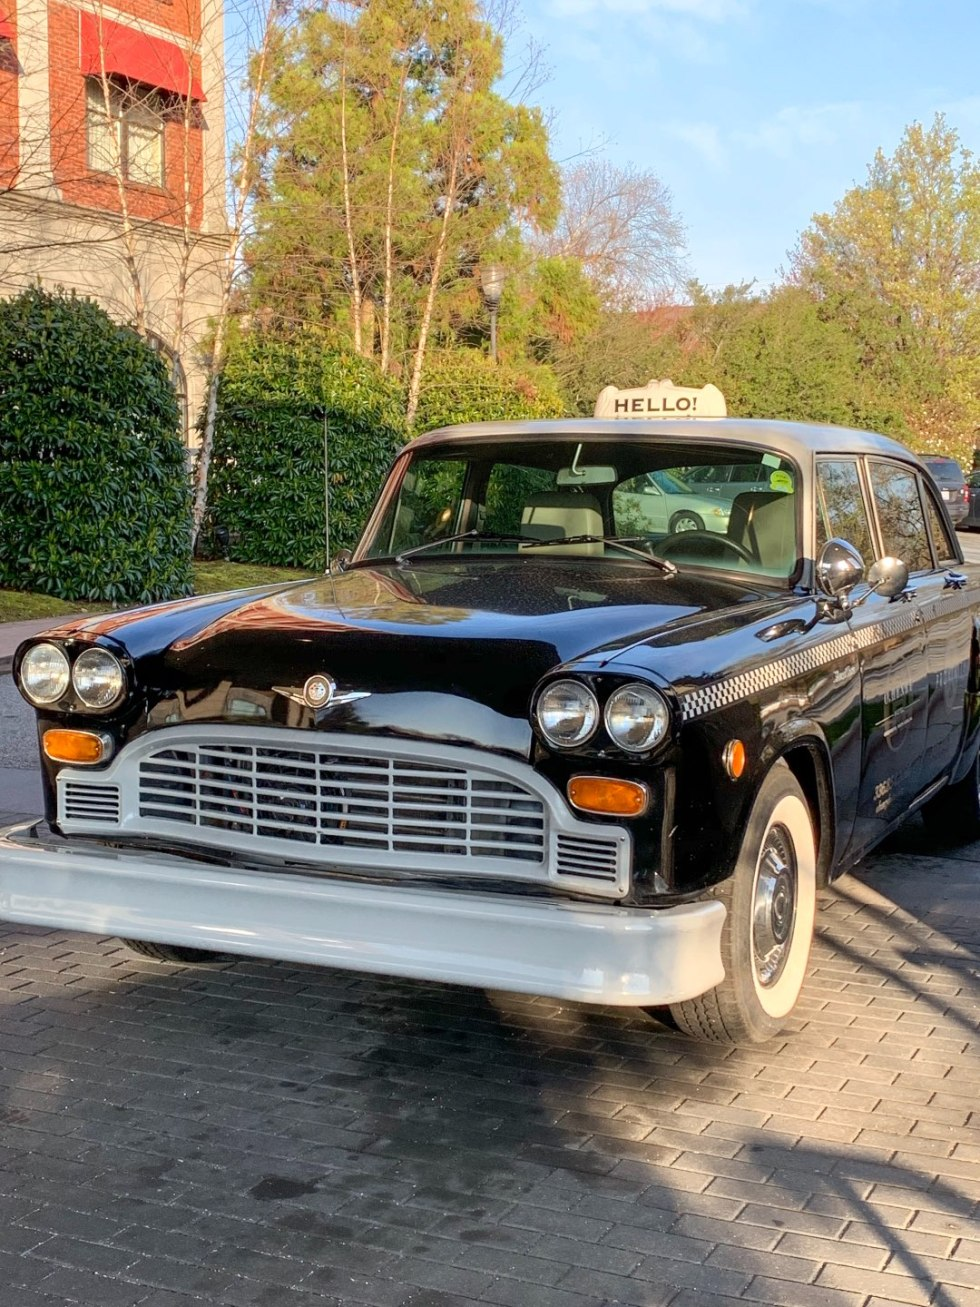 A Night at the O.Henry Hotel In Greensboro, NC - I'm Fixin' To - @mbg0112 |  A Night at the O.Henry Hotel In Greensboro, NC by popular North Carolina blog, I'm fixin' To: image of a vintage taxi cab at the O. Henry Hotel.